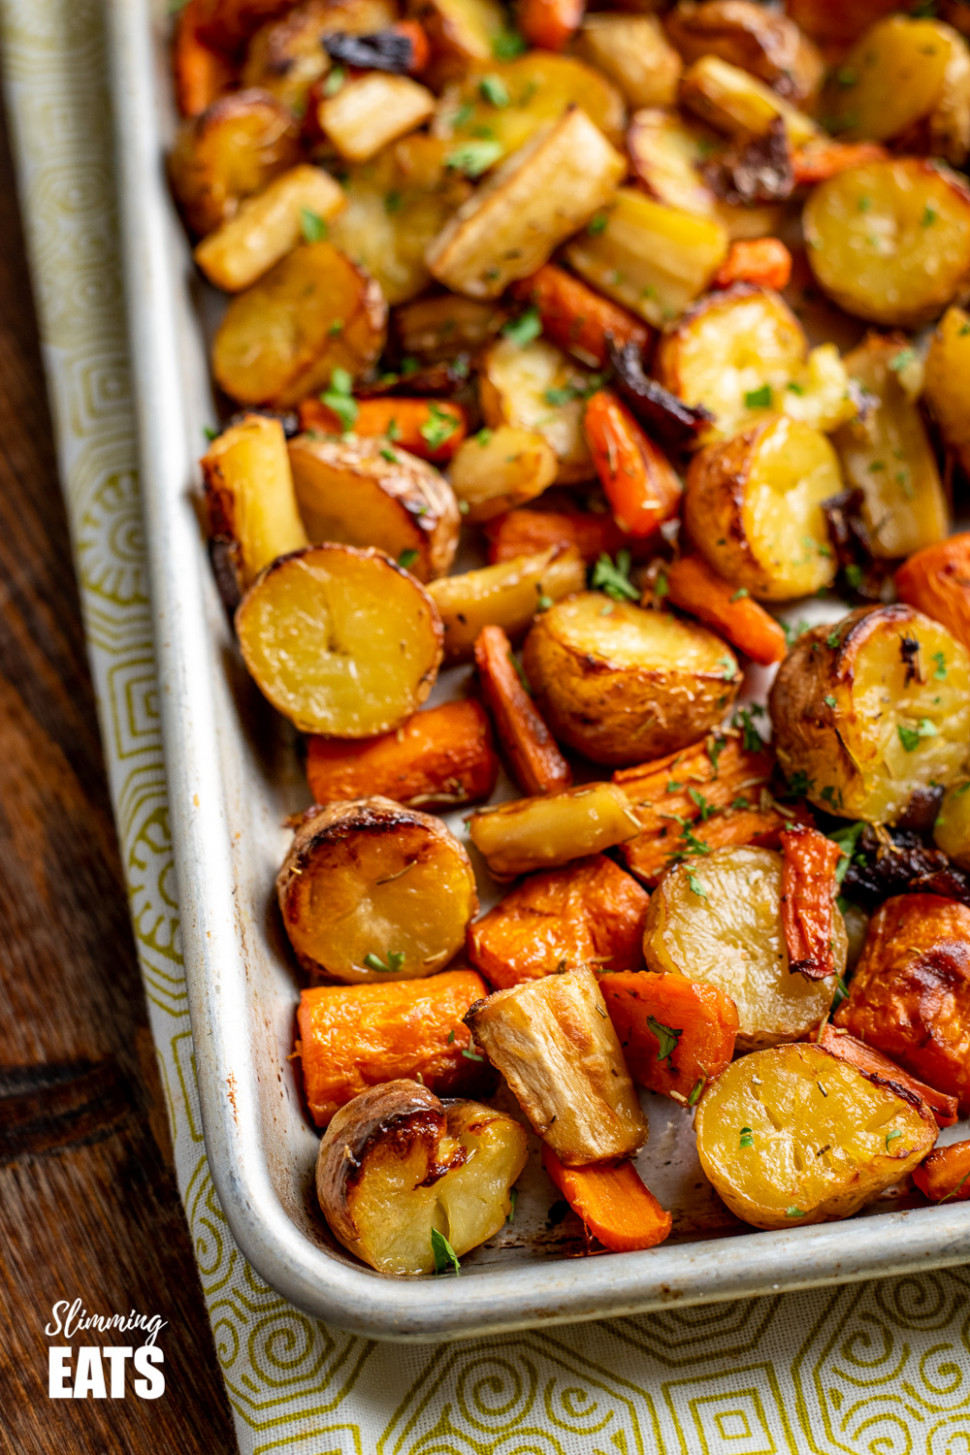 Rosemary Roasted Potatoes, Parsnips, Carrots and Onion ..